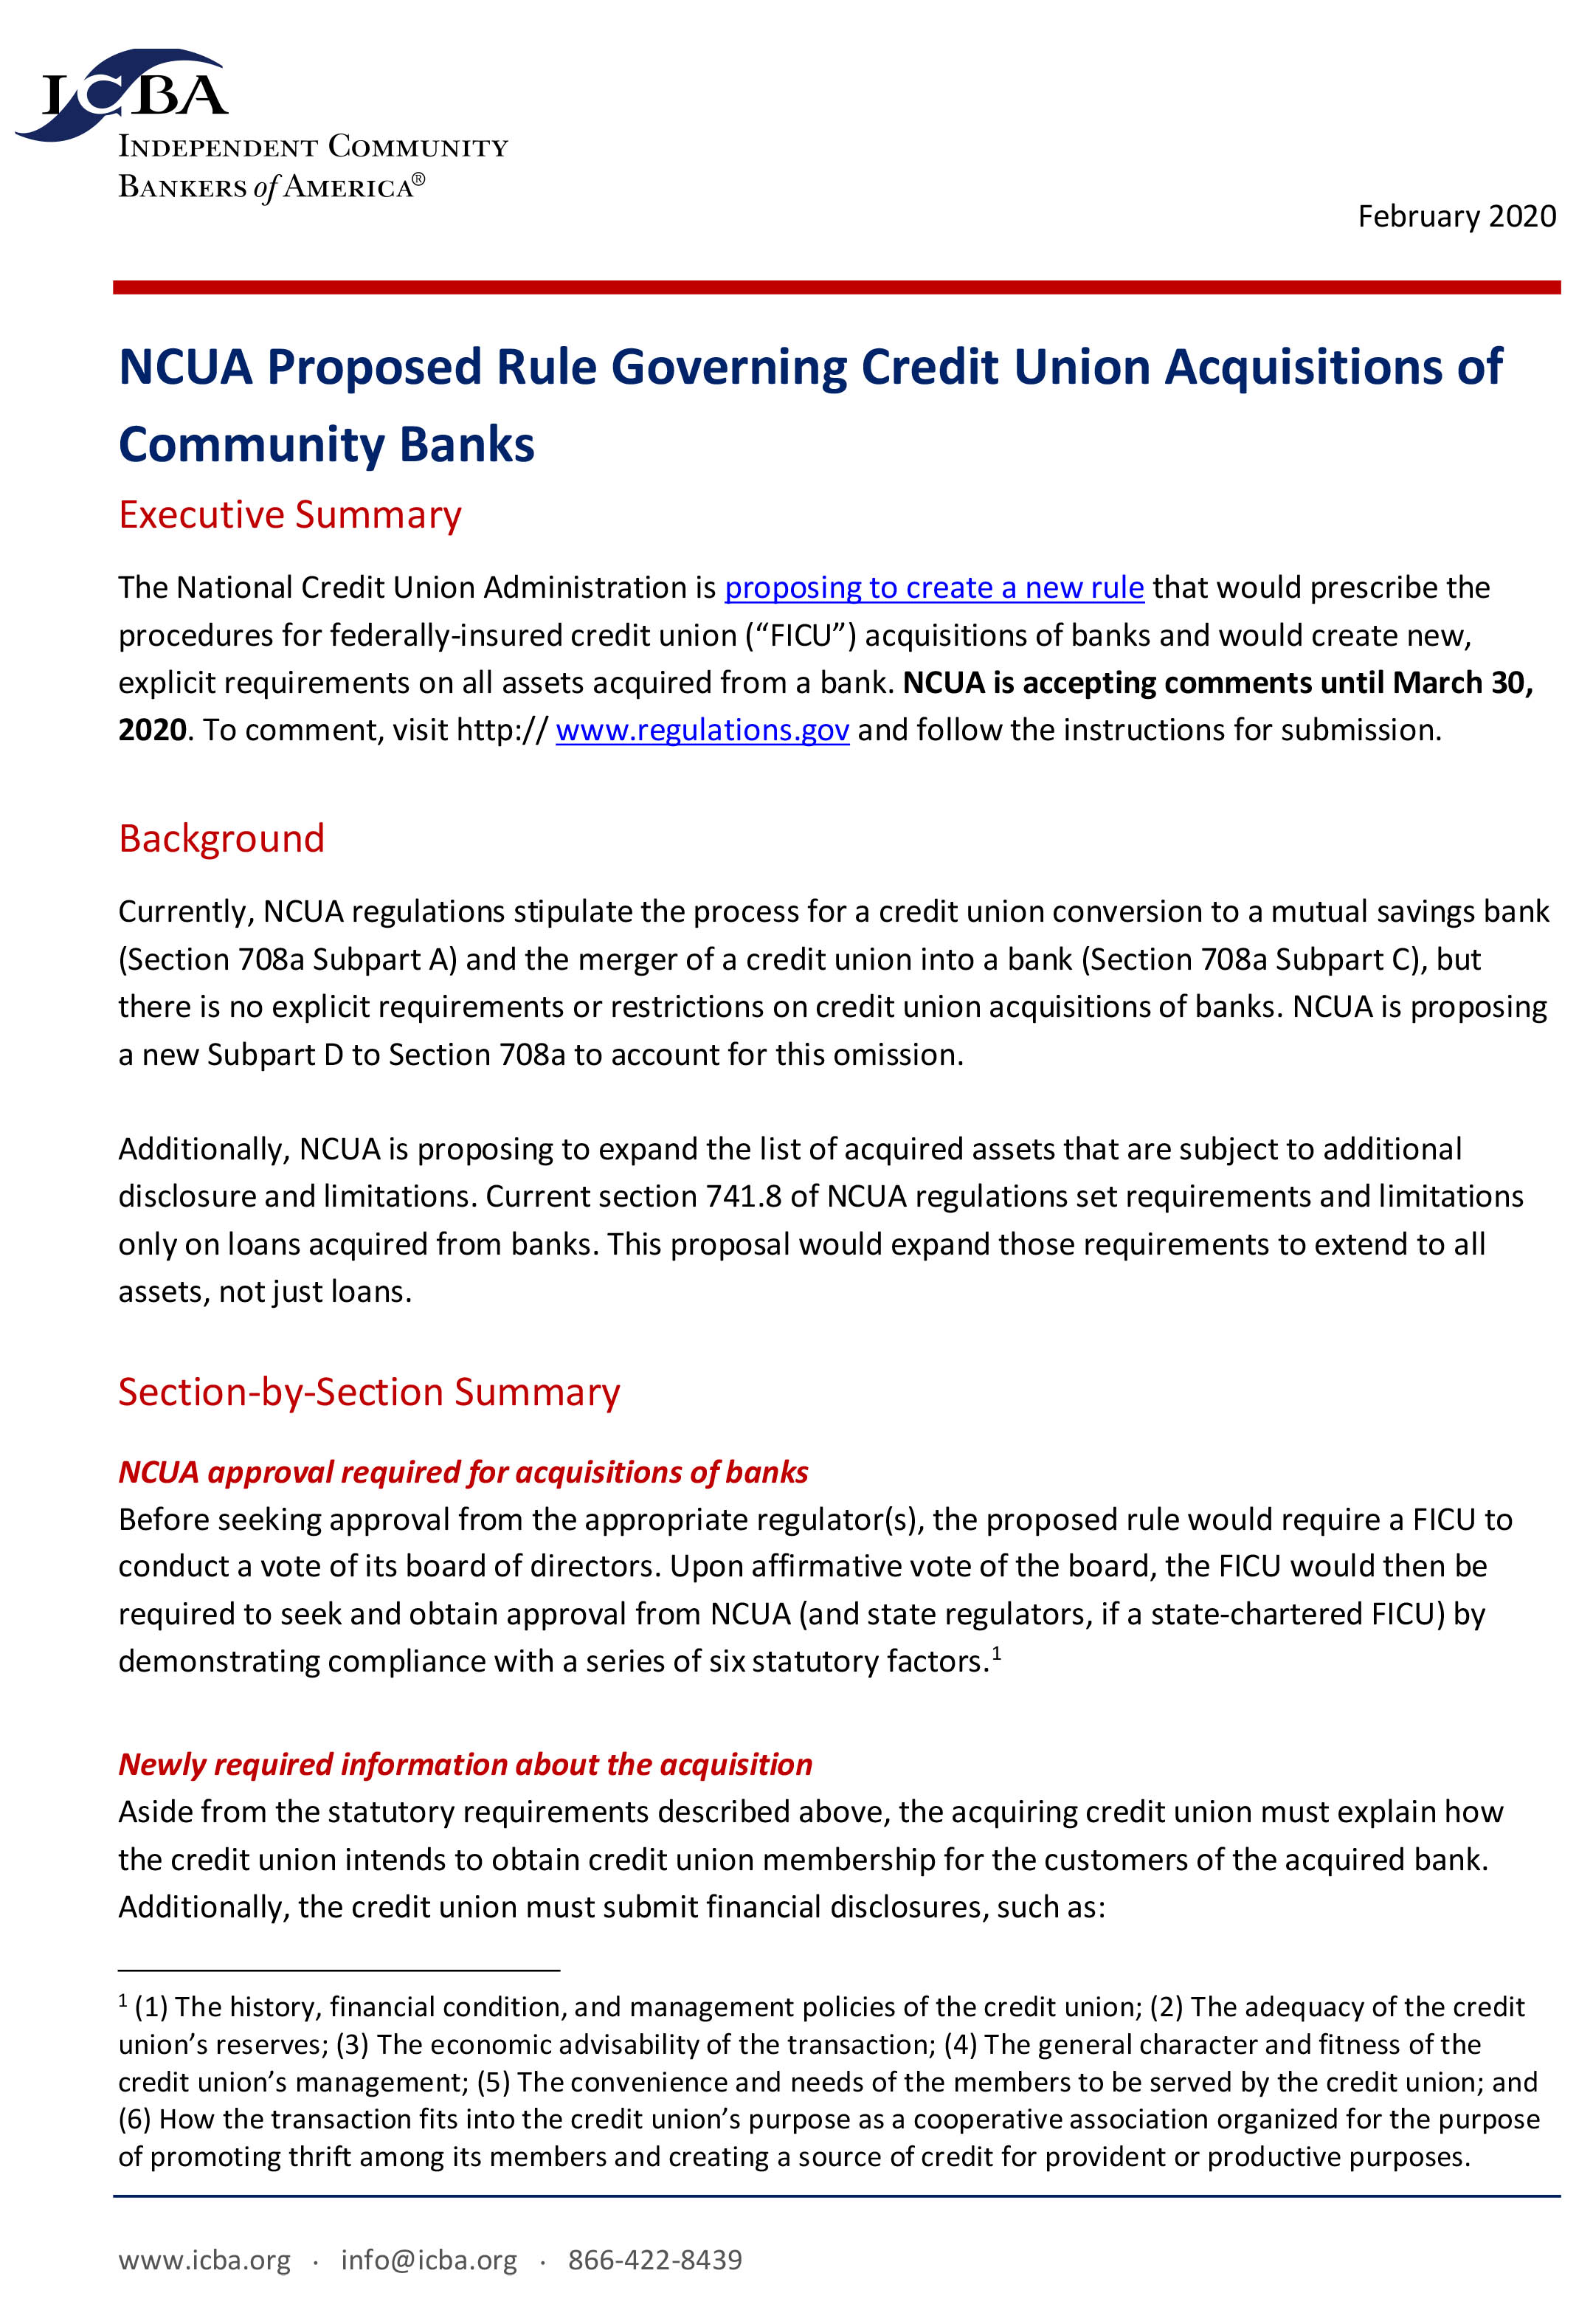 NCUA Proposed Rule